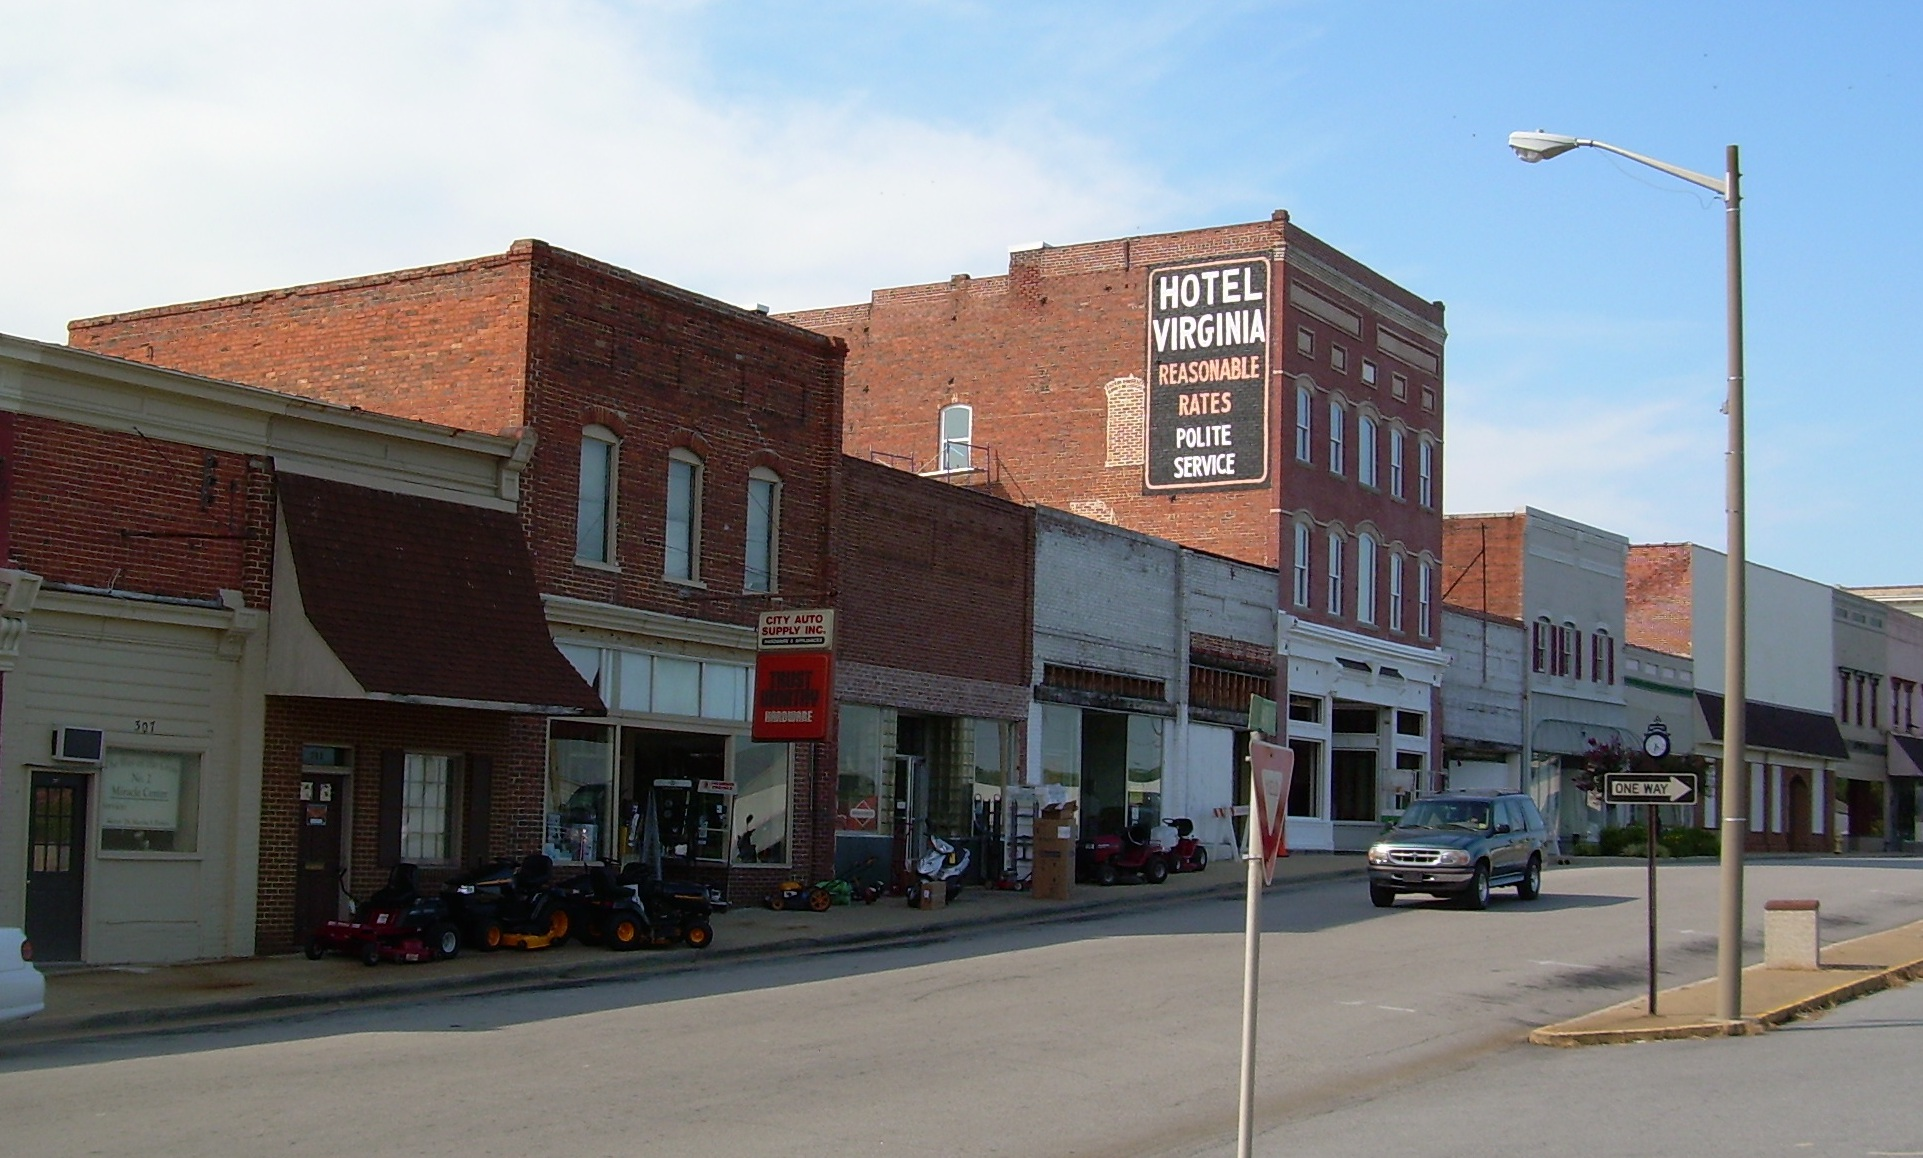 Belfield-Emporia Historic District